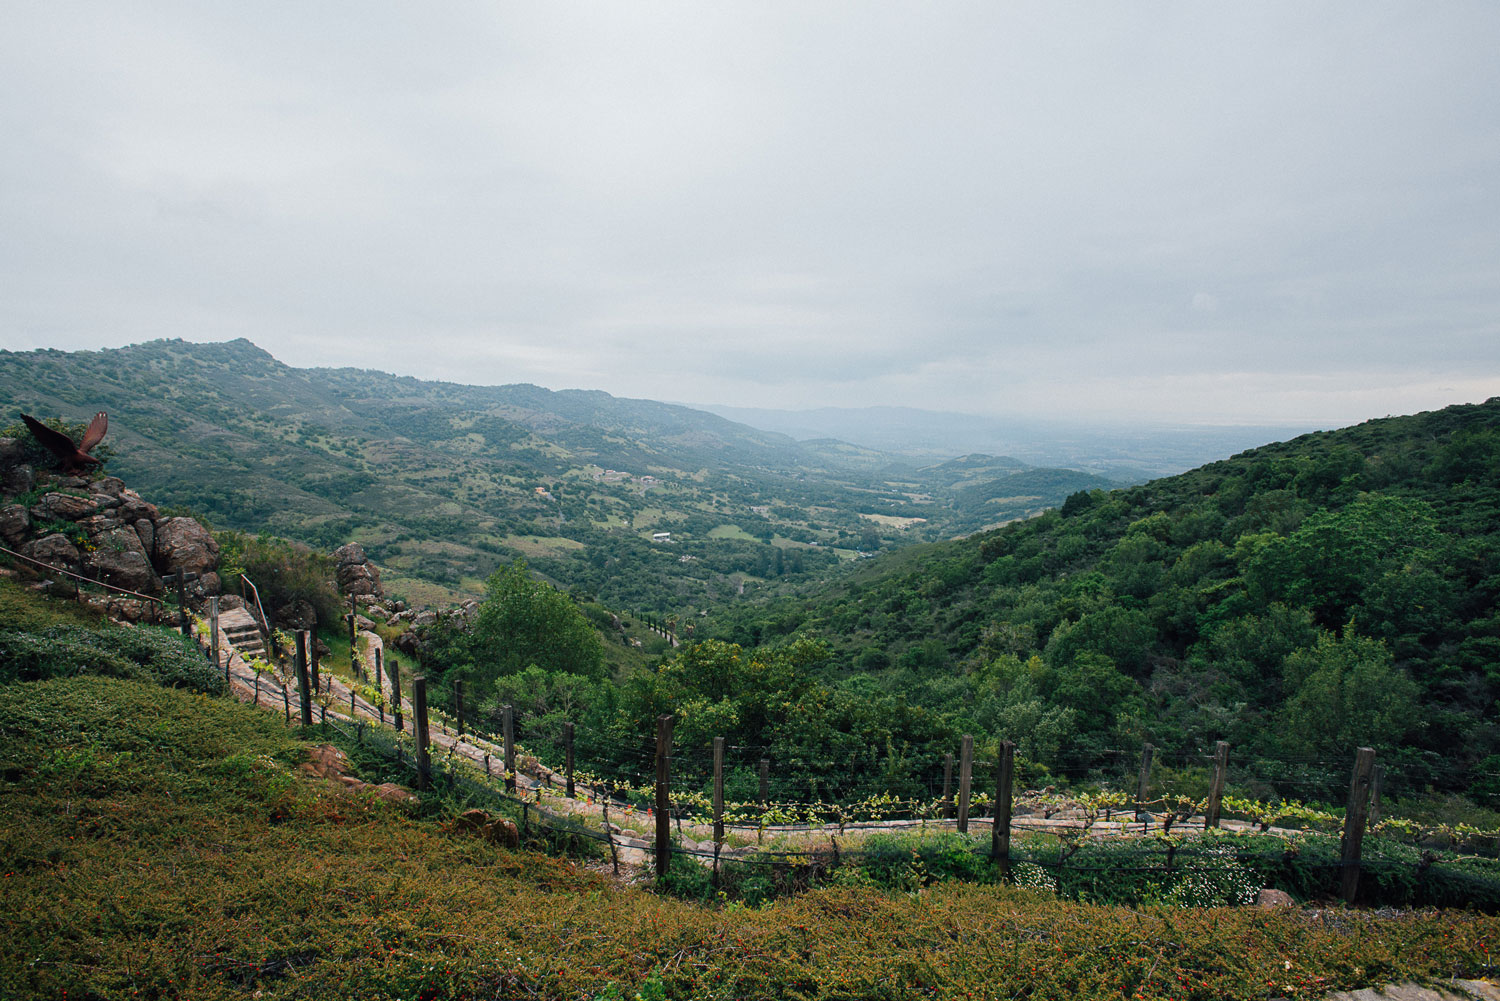 Napa Valley wine country wedding ideas proposal spot